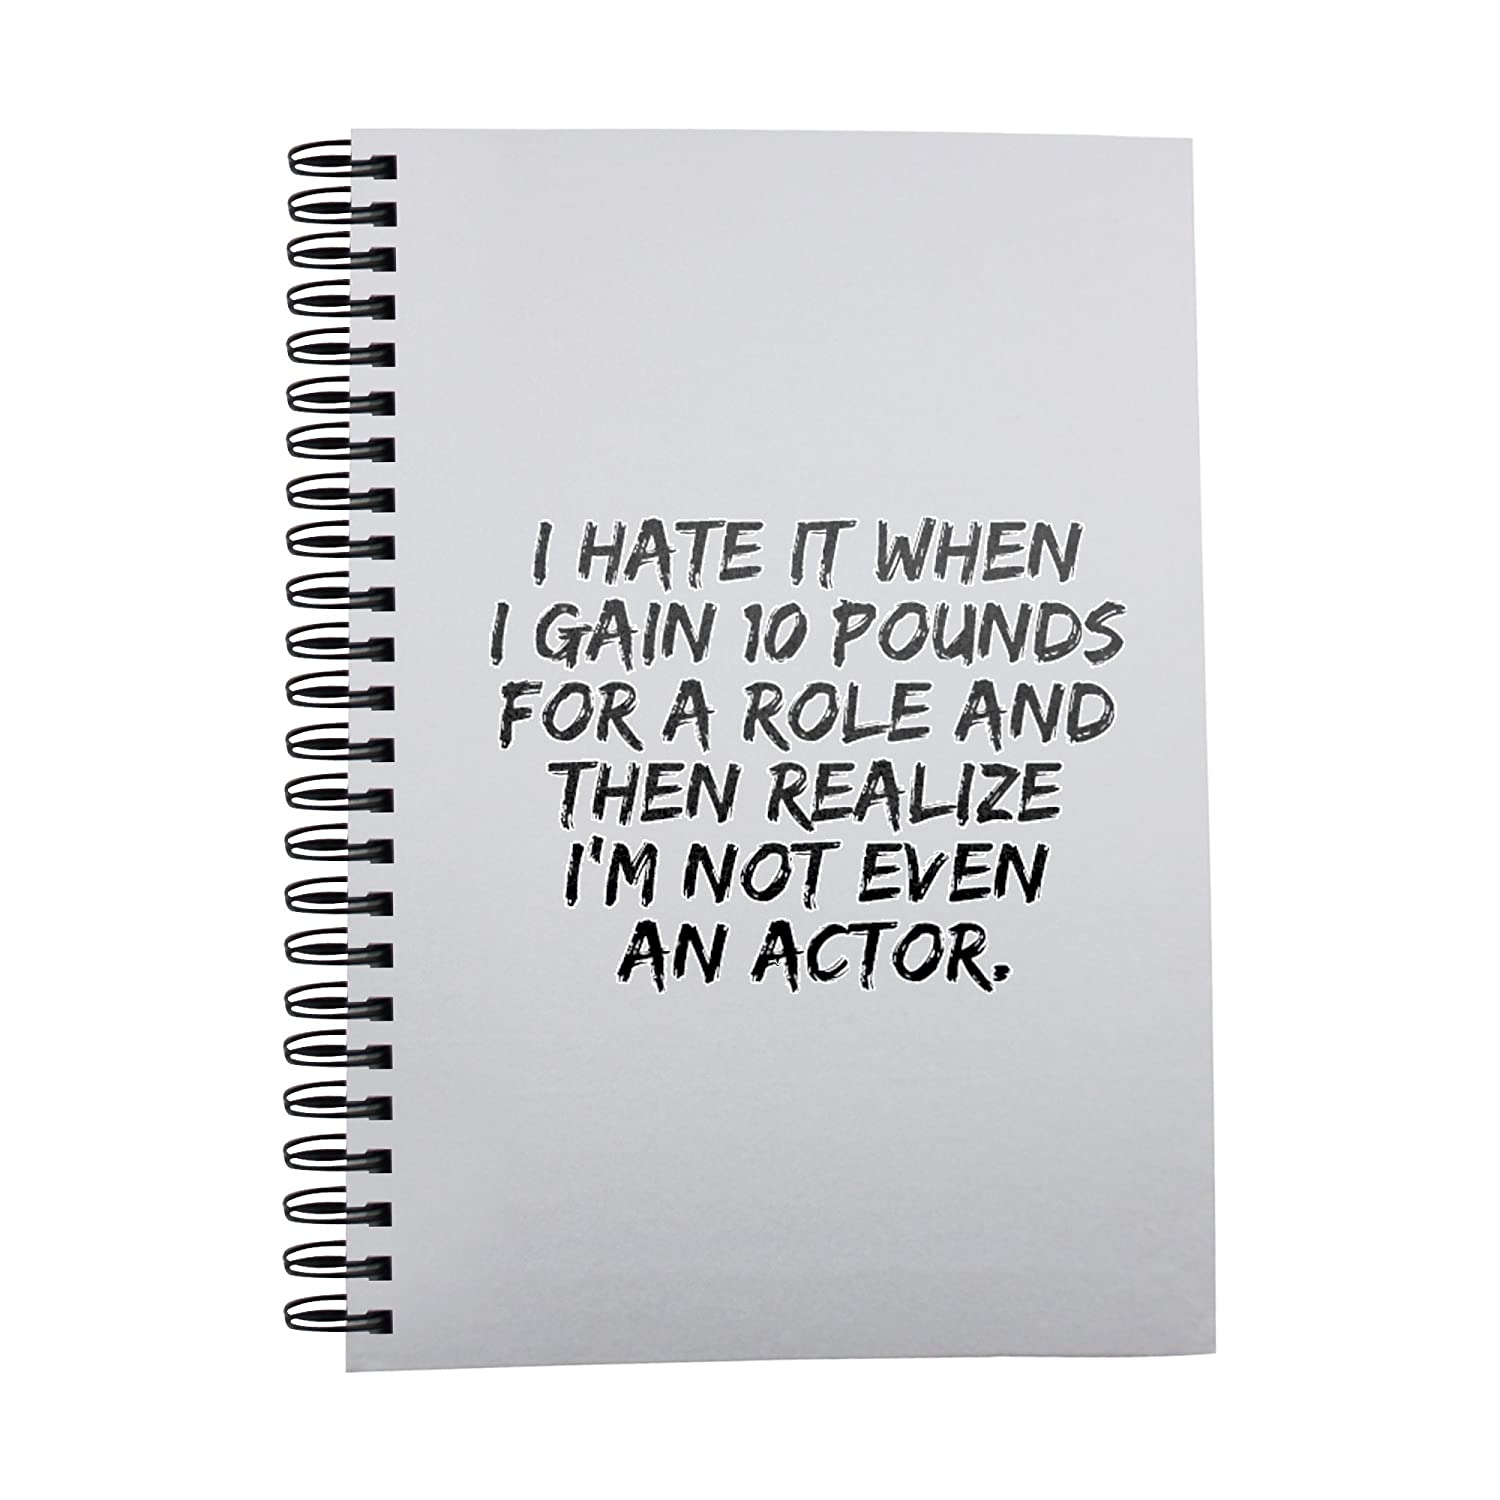 4b552d934c91 I hate it when I gain 10 pounds for a role and then realize I m not even an  actor notebook  Amazon.co.uk  Kitchen   Home